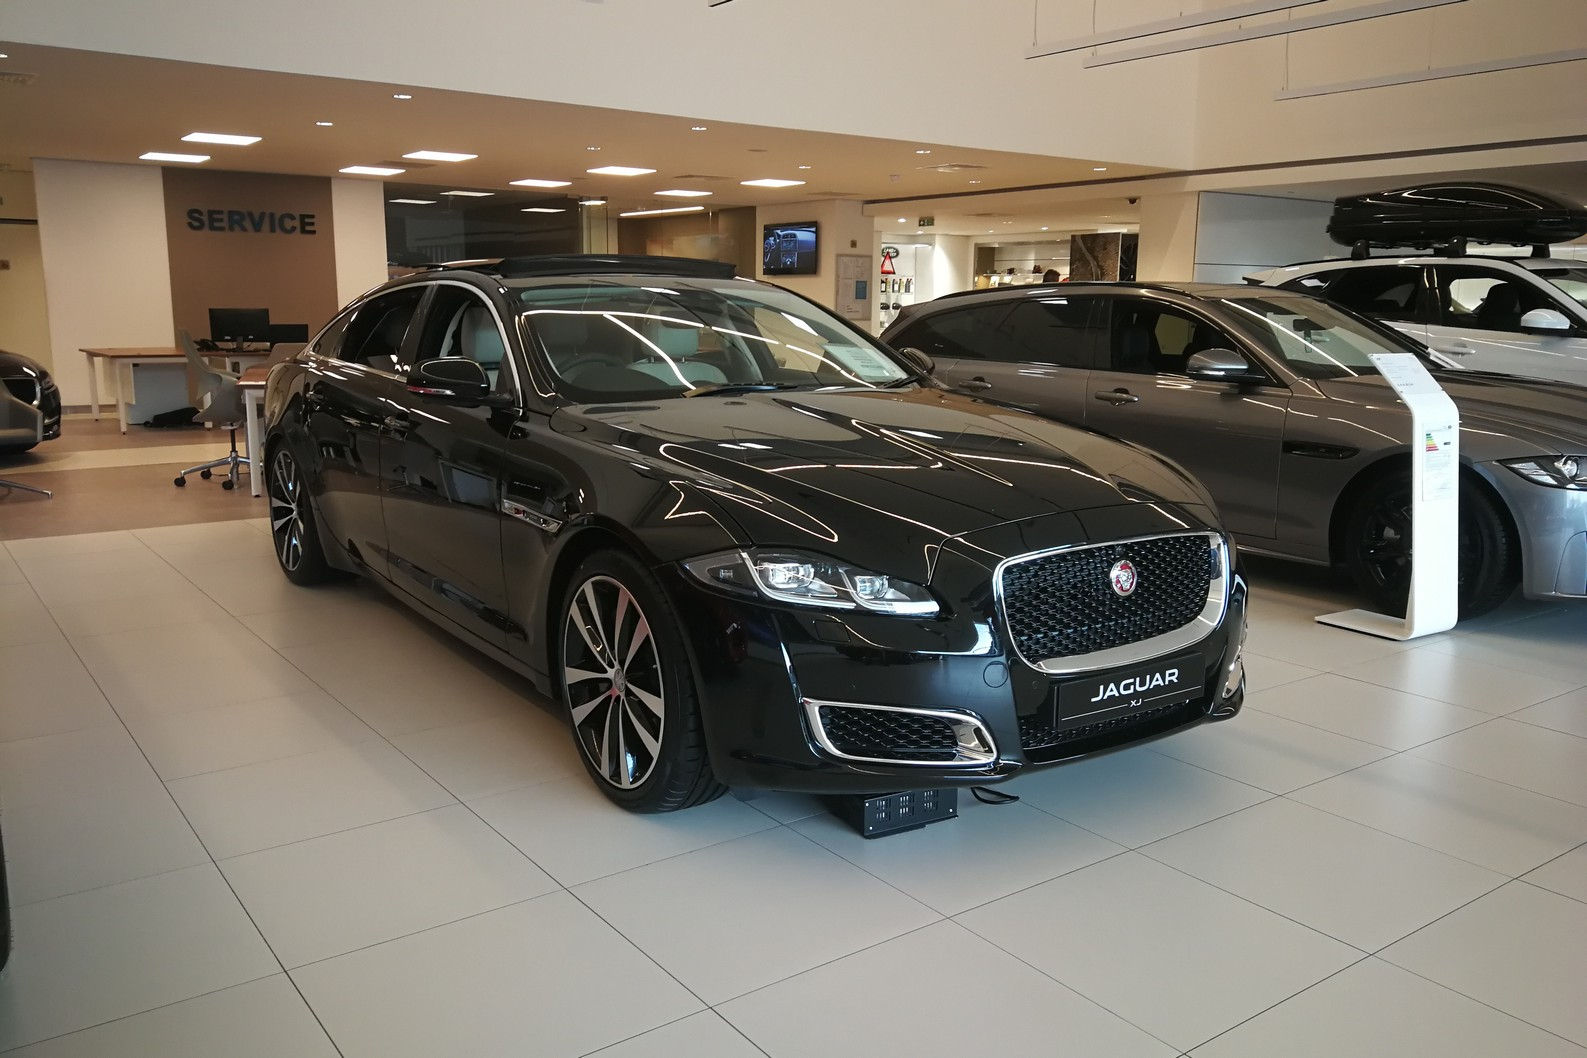 Jaguar XJ 3.0d V6 XJ50 LWB - Delivery Mileage - Surround Camera - Heated and cooled S Diesel Automatic 4 door Saloon (19MY) image